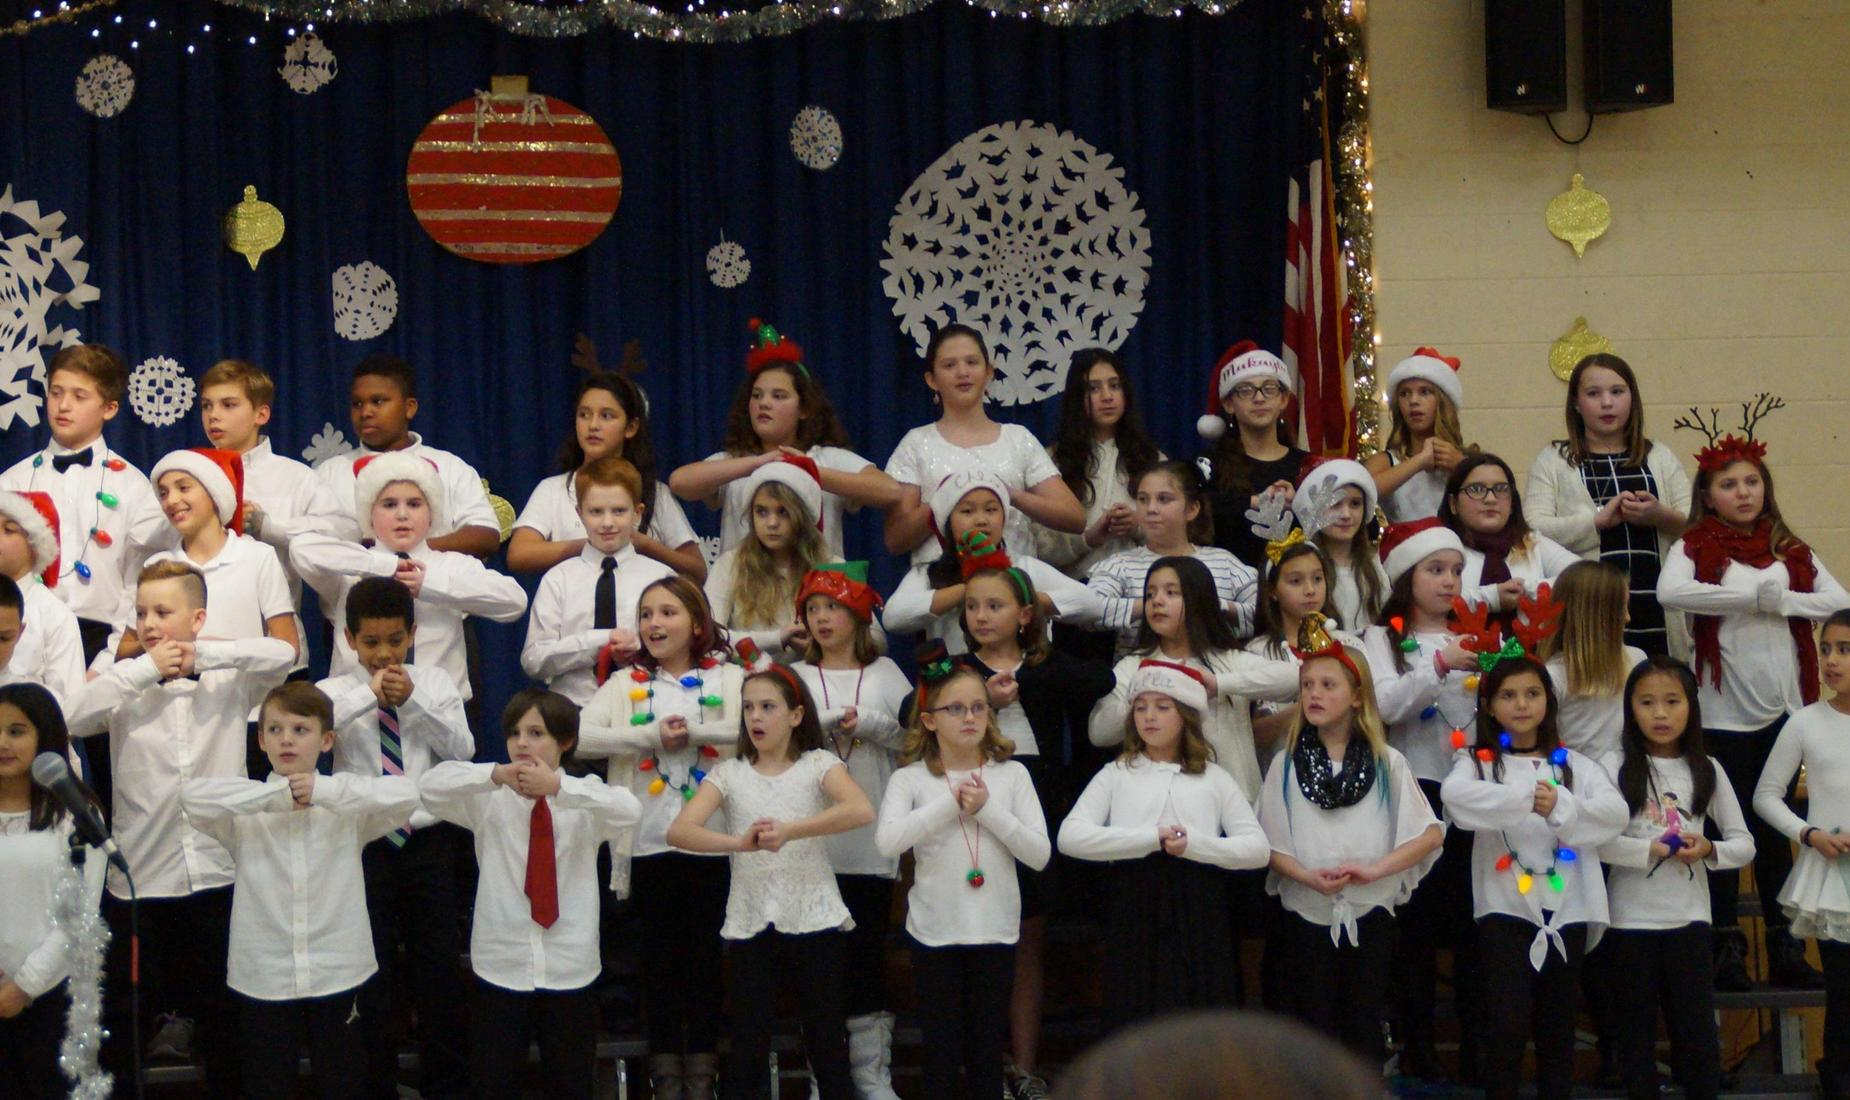 Girls and boys dressed on white tops and black pants, some with Santa hats, singing in the chorus